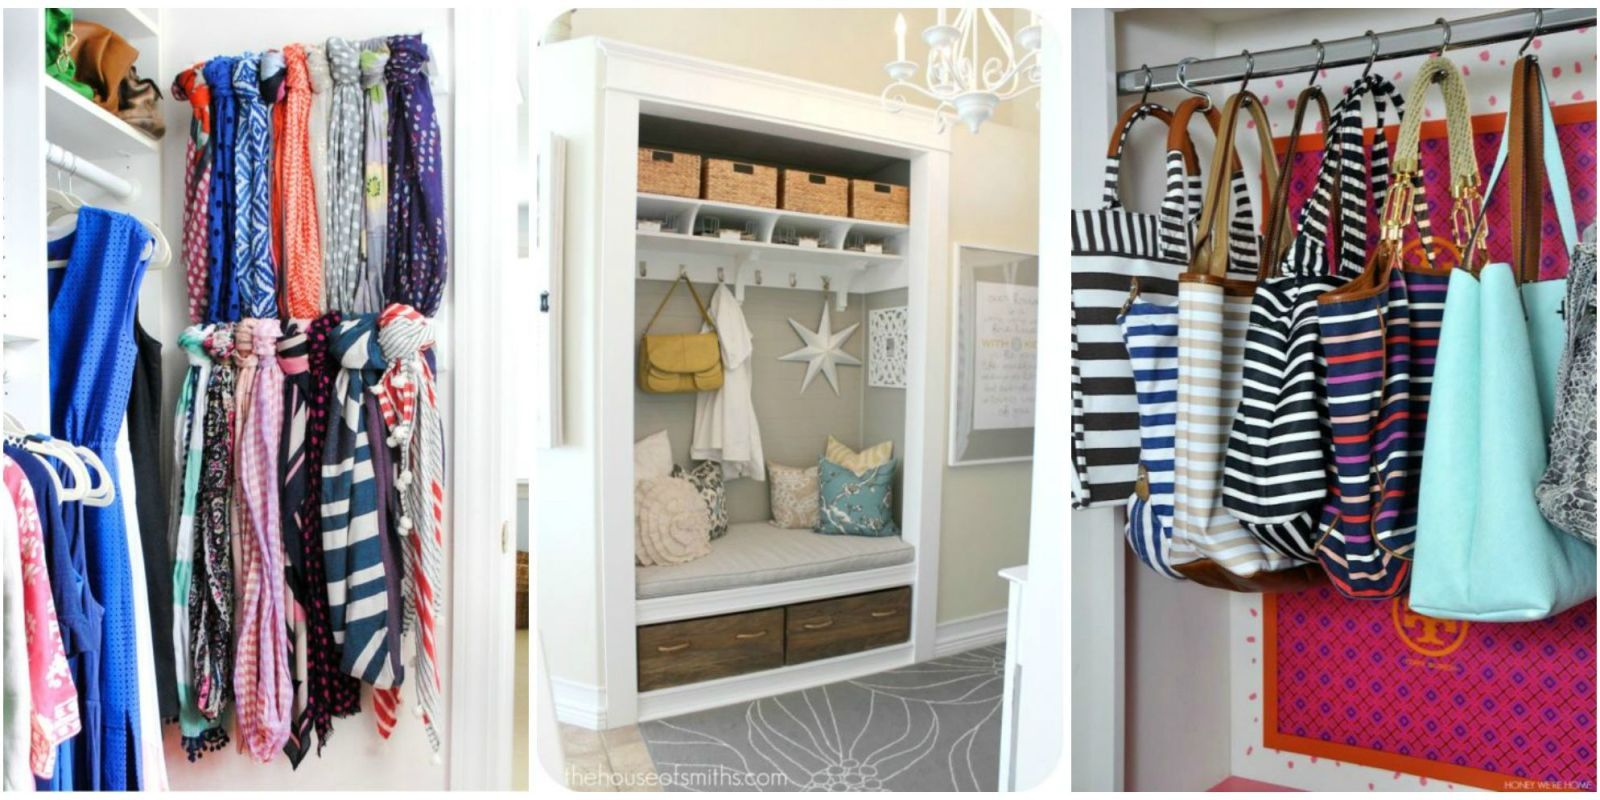 Meet The Only Closet Organizing Tip ThatWorks